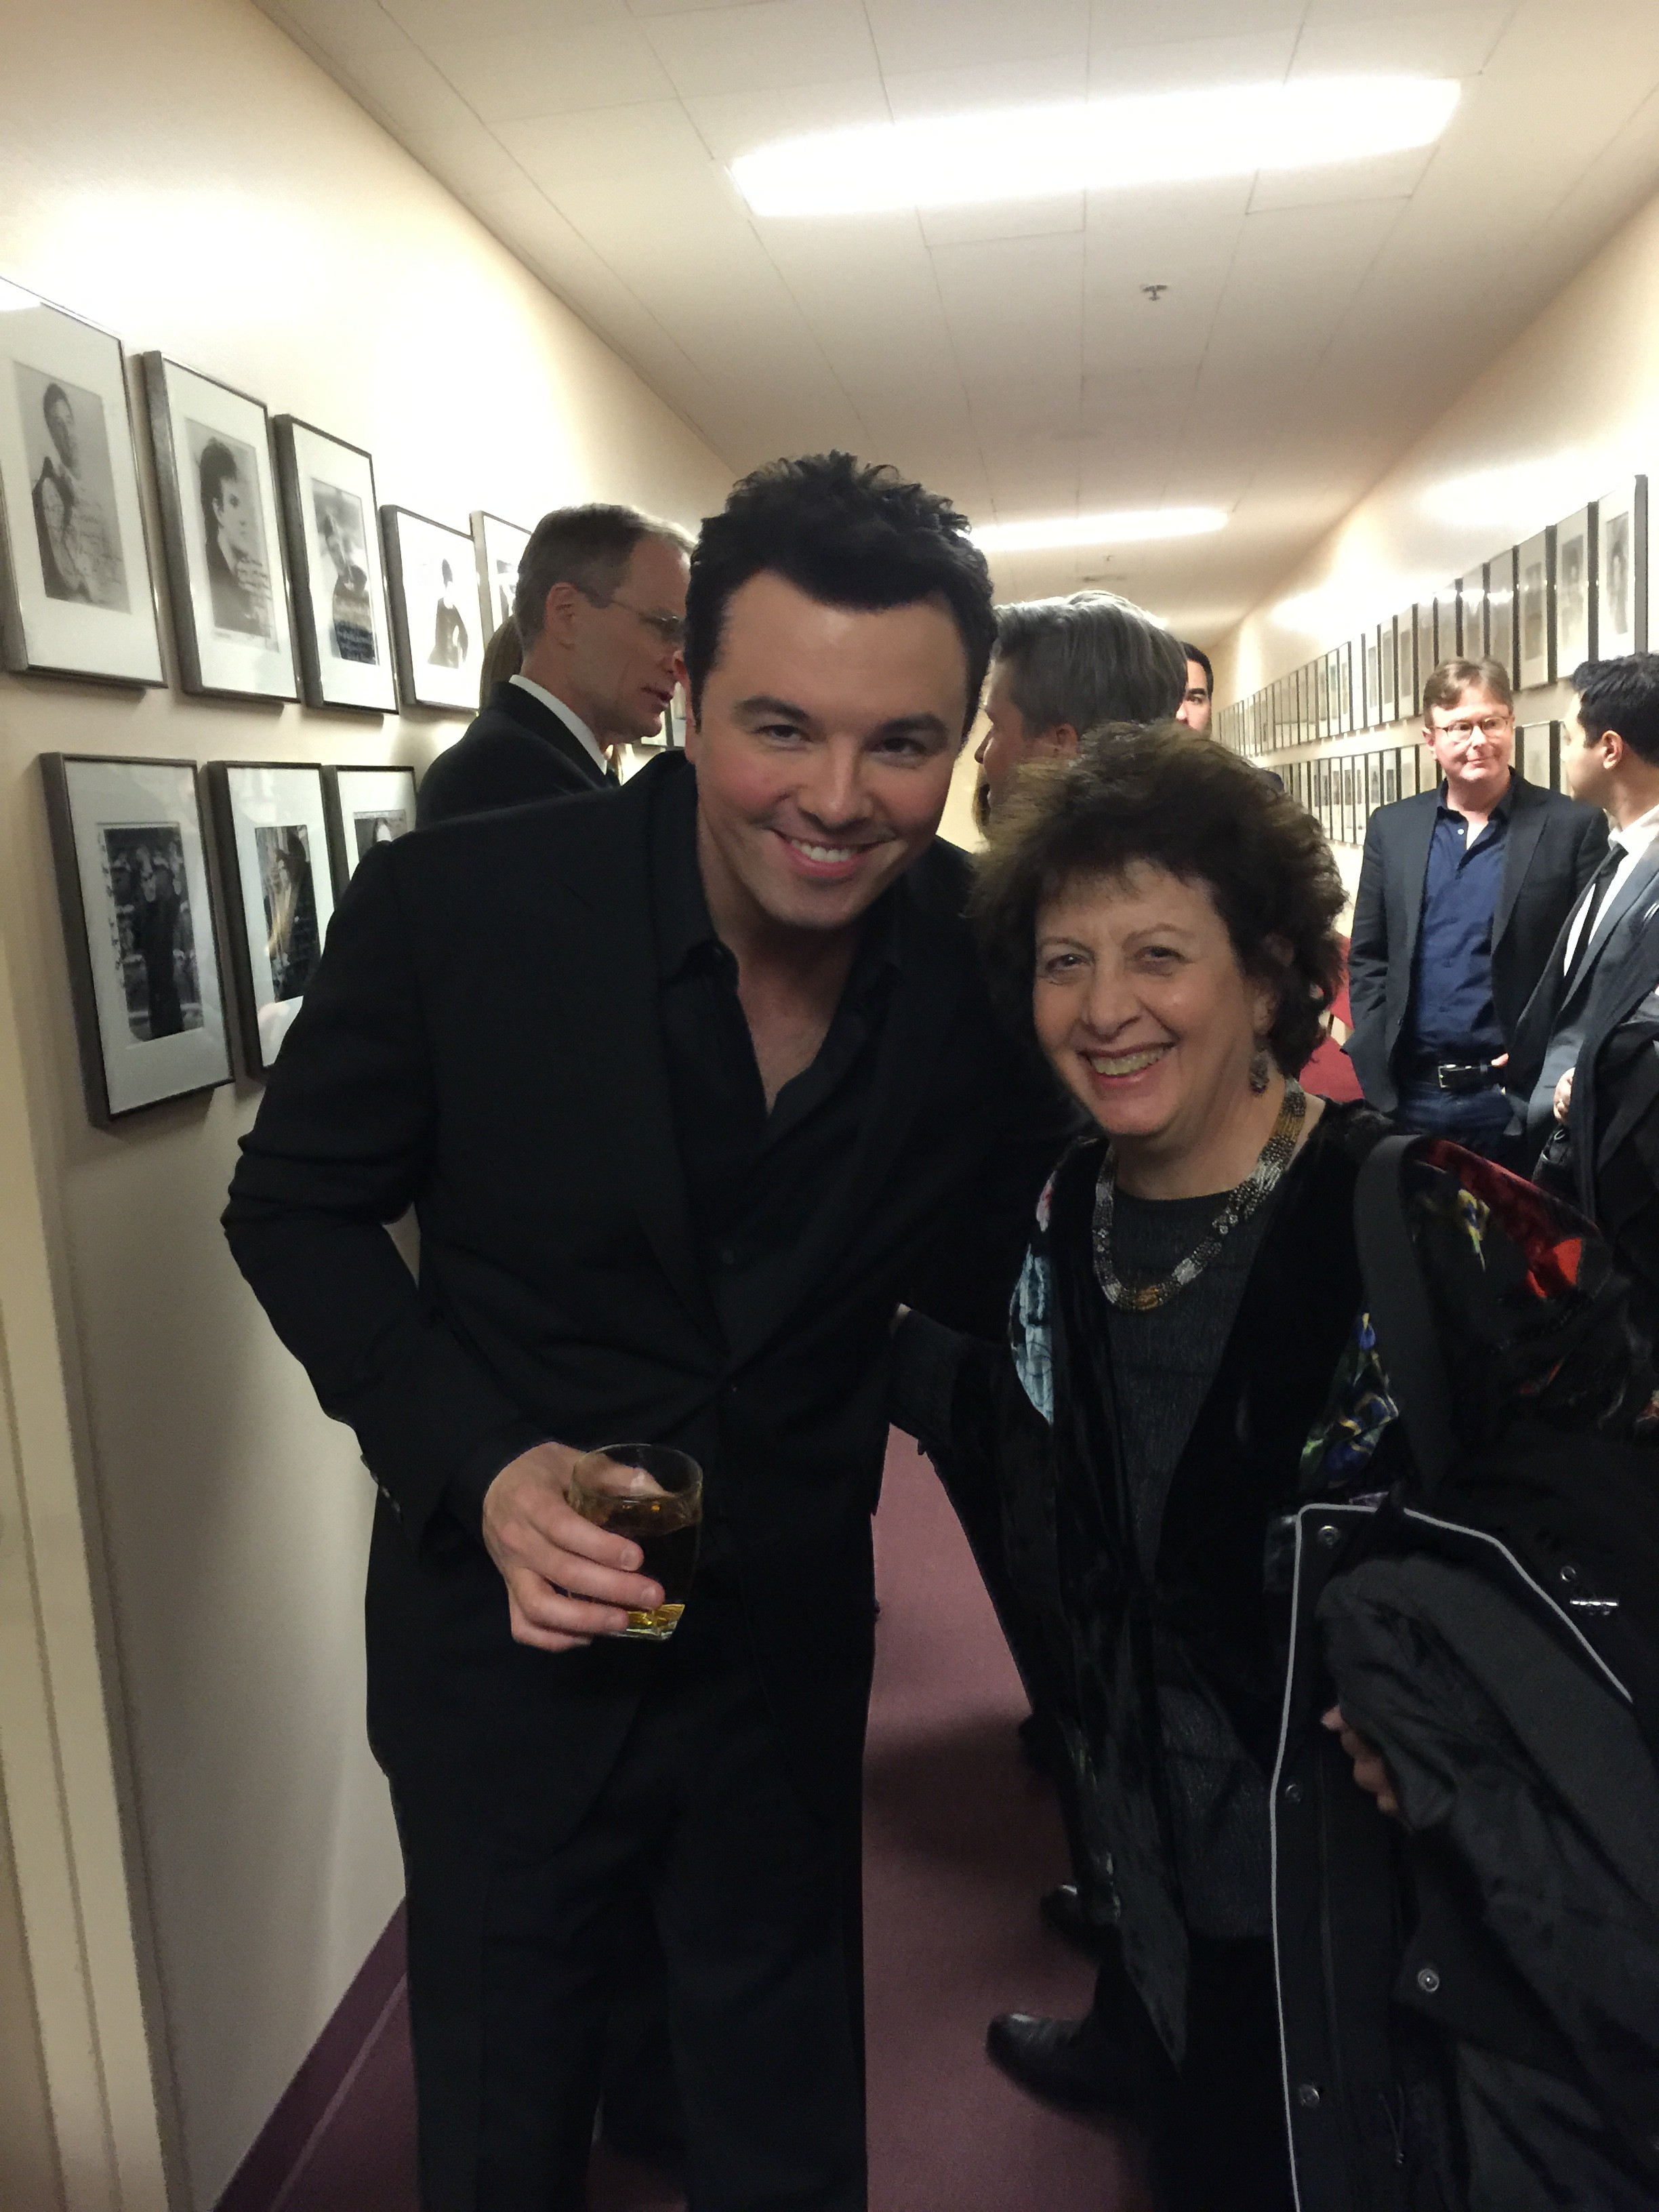 Family Friendly: An interview with Seth MacFarlane - Metro Weekly